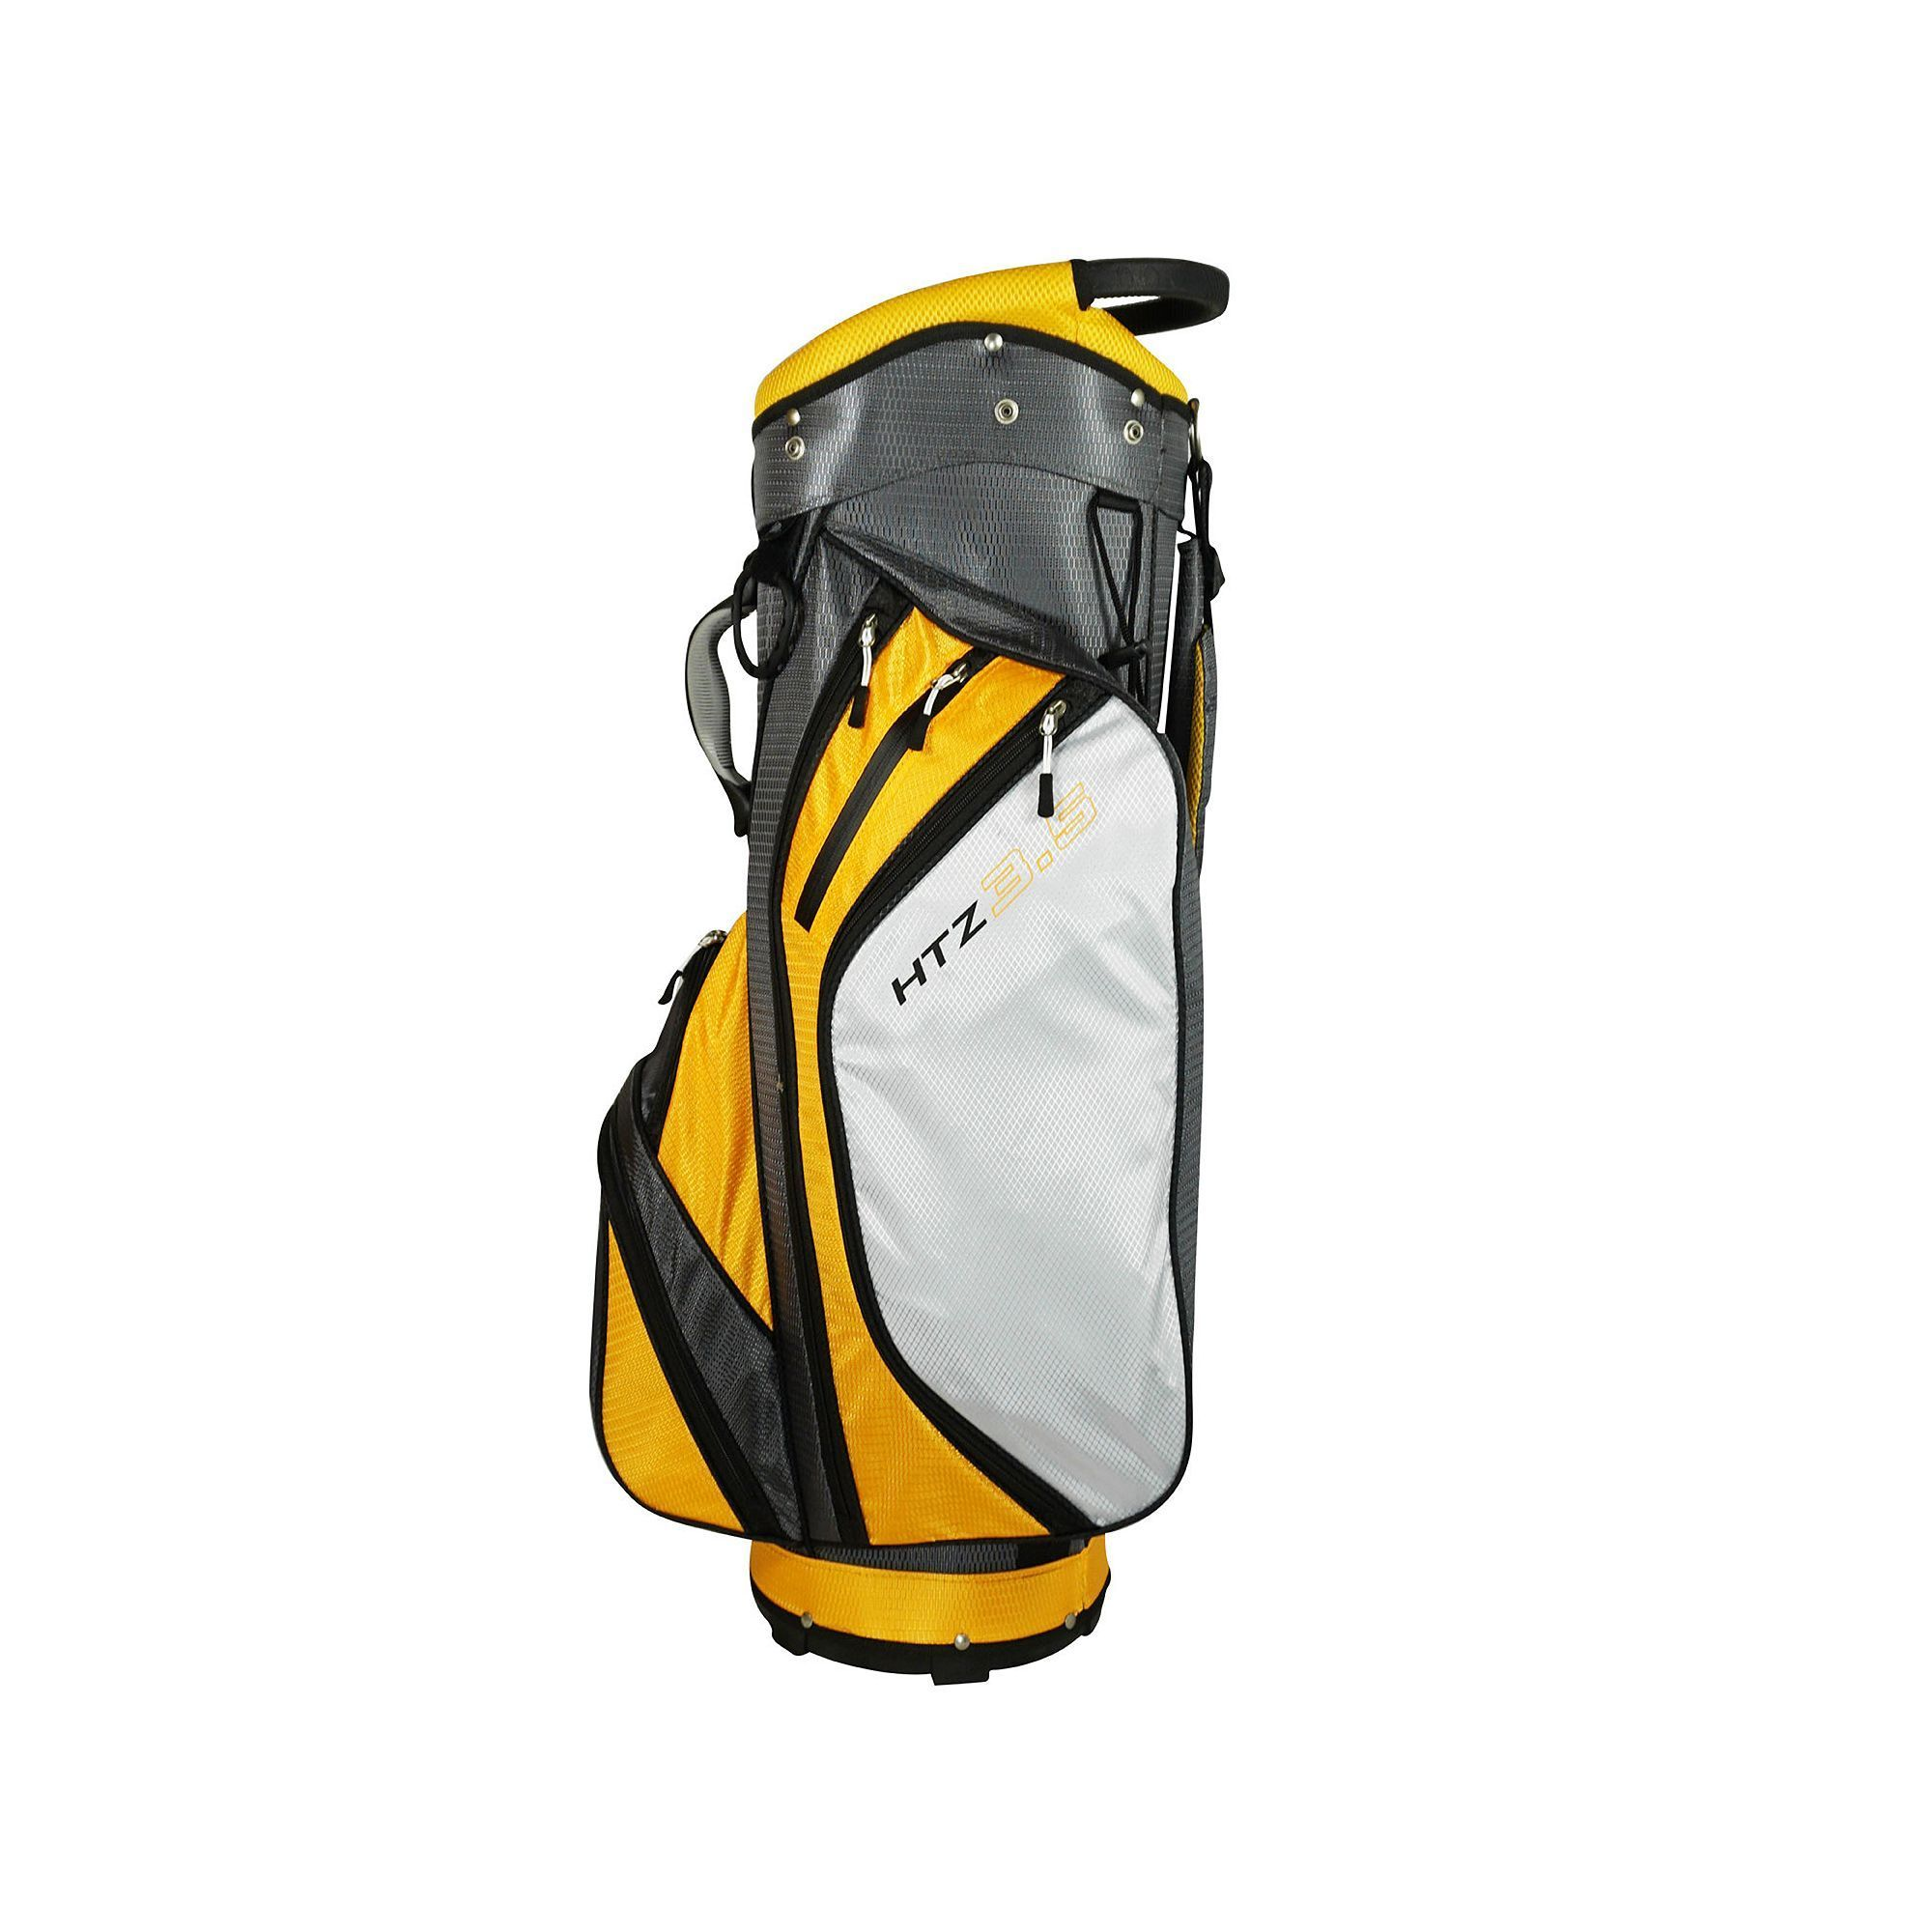 c8a09927d318 Hot-Z 3.5 Golf Cart Bag